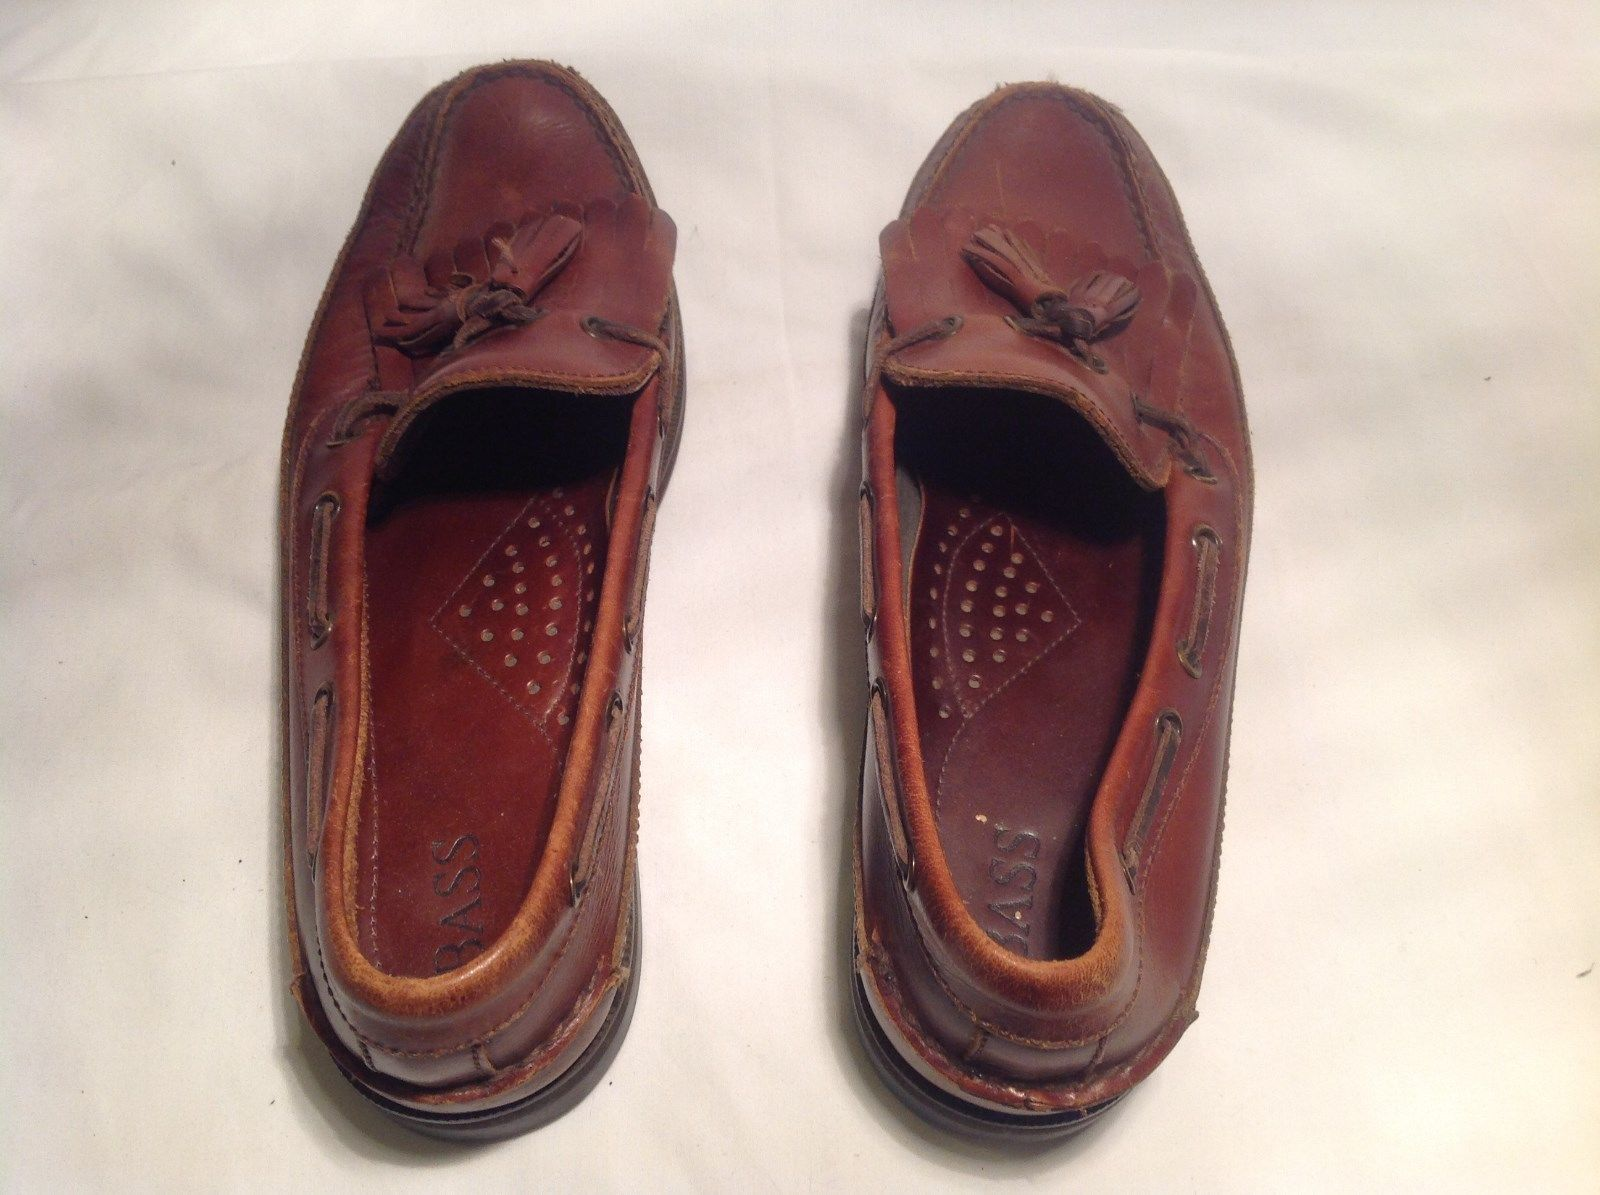 Bass Brown Loafers Good Condition Leather with Rubber Sole Size 10.5